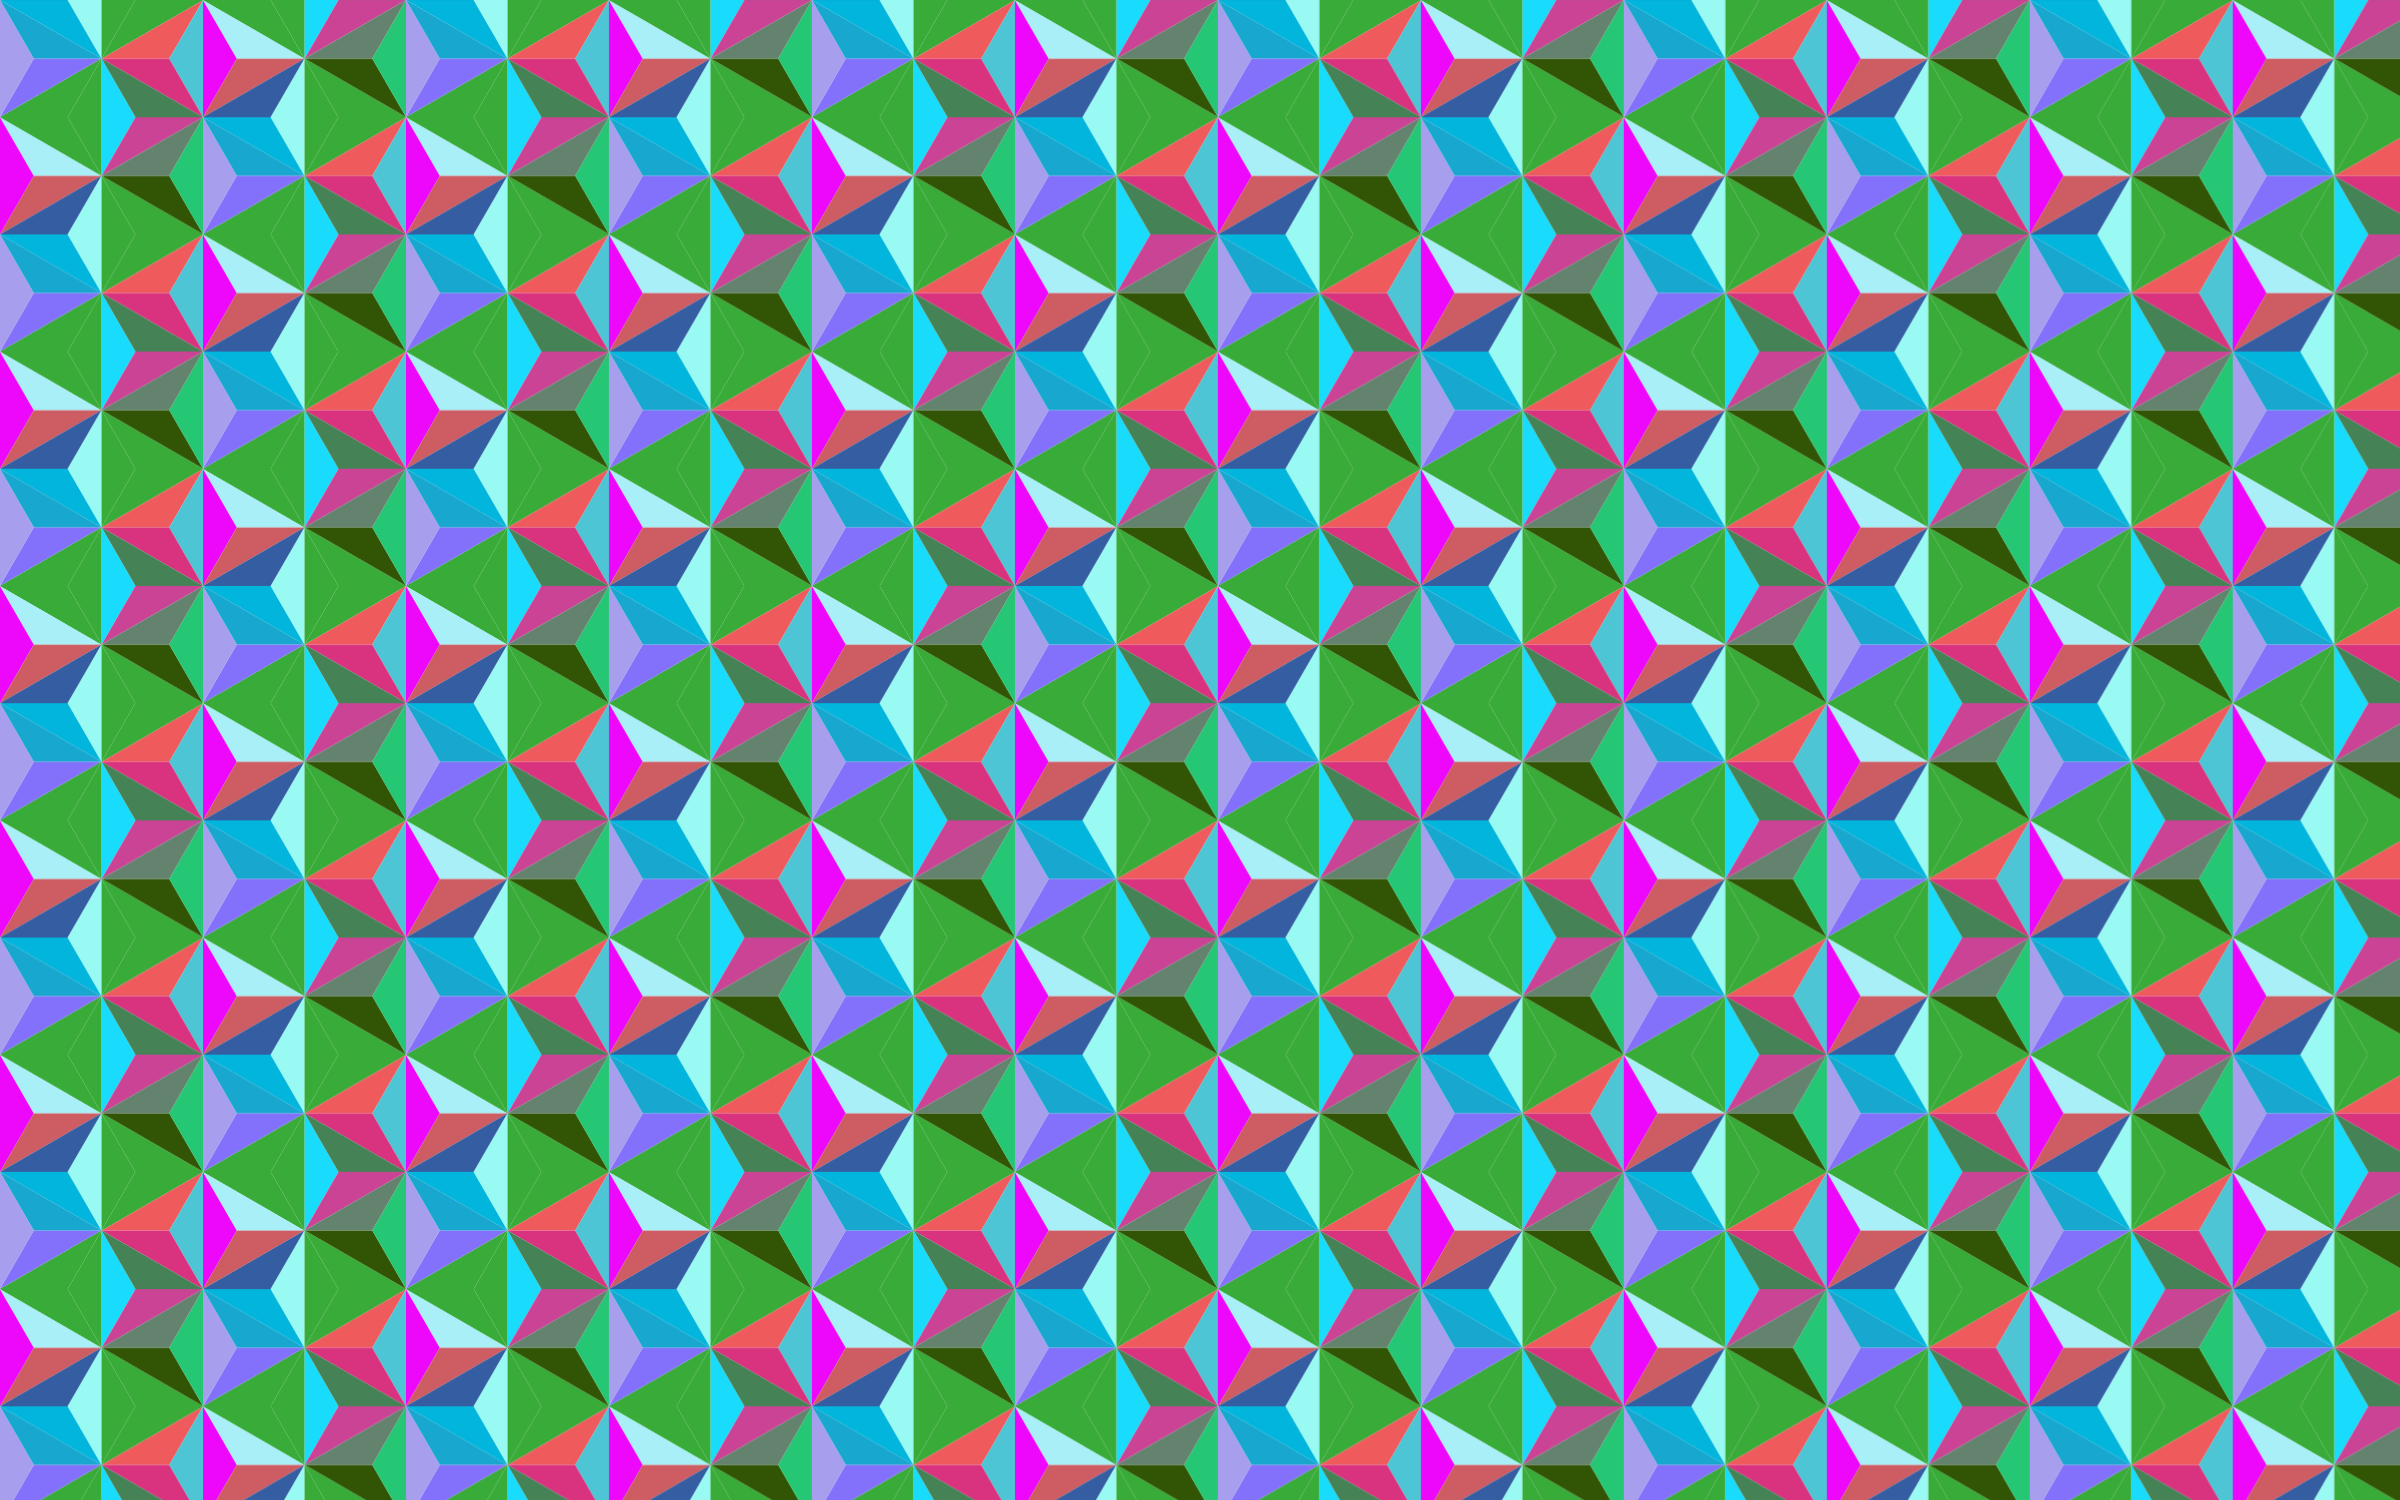 Seamless Hexagonal Diamonds Pattern 3 by GDJ